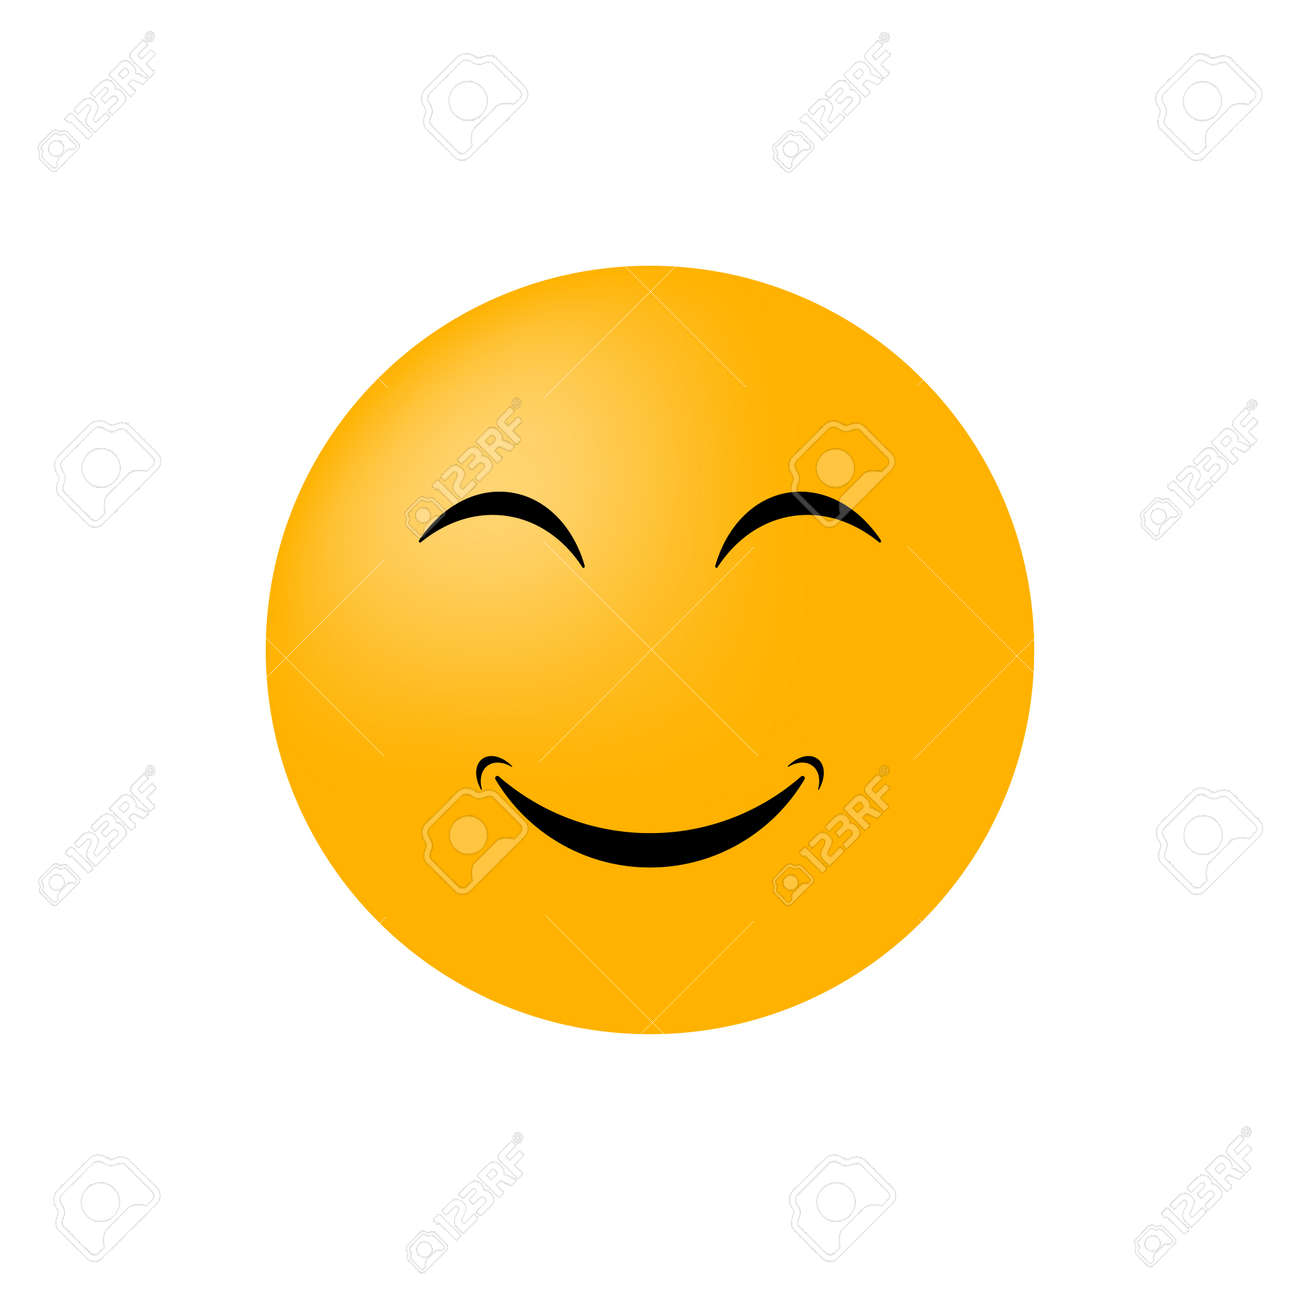 Emoticon face isolated on white background. Vector icon - 166275176